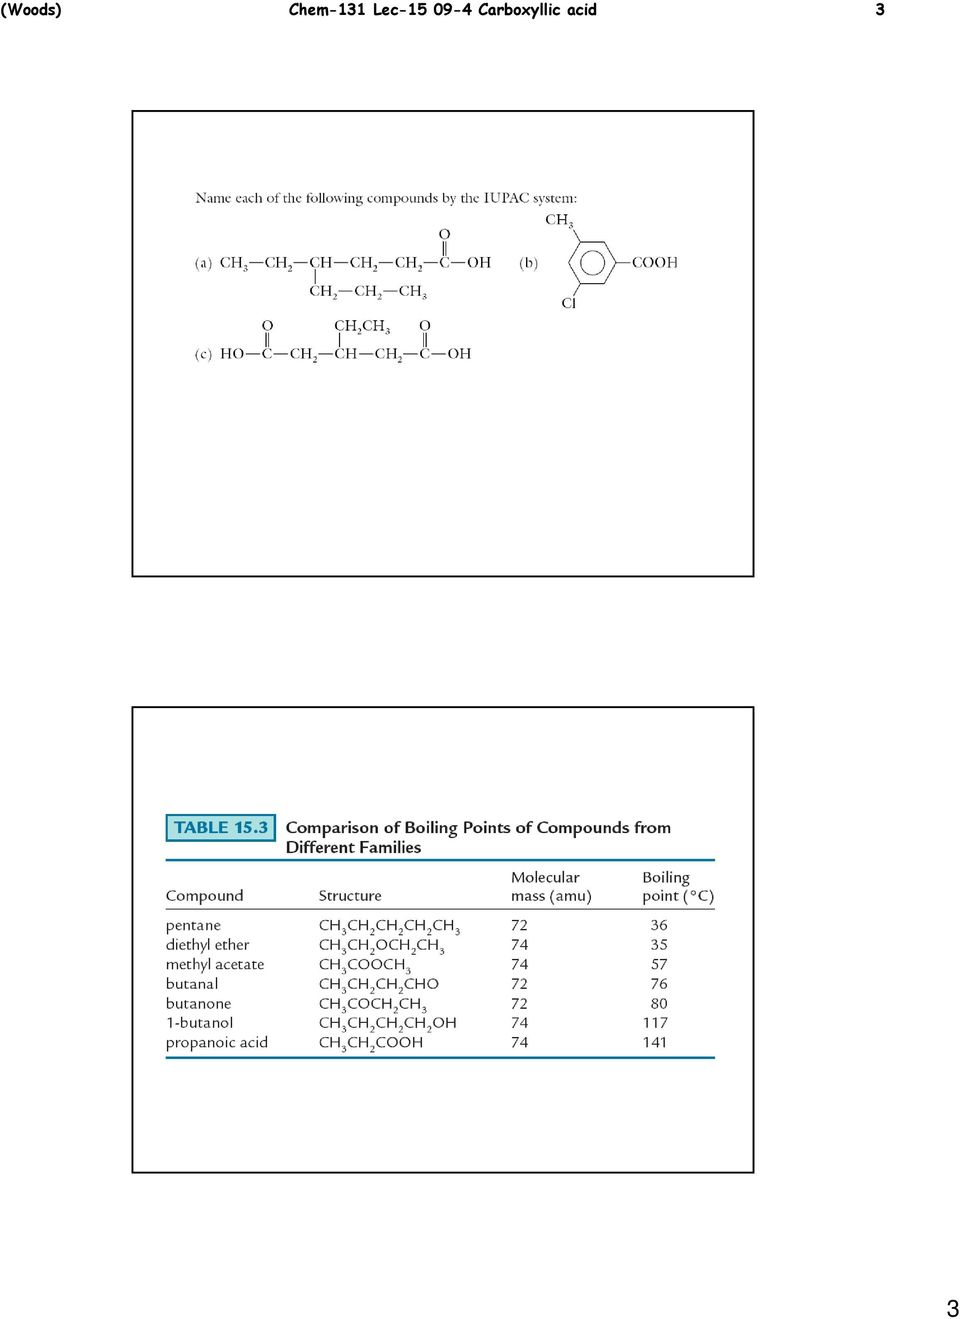 than alcohols, aldehydes, or ketones, and